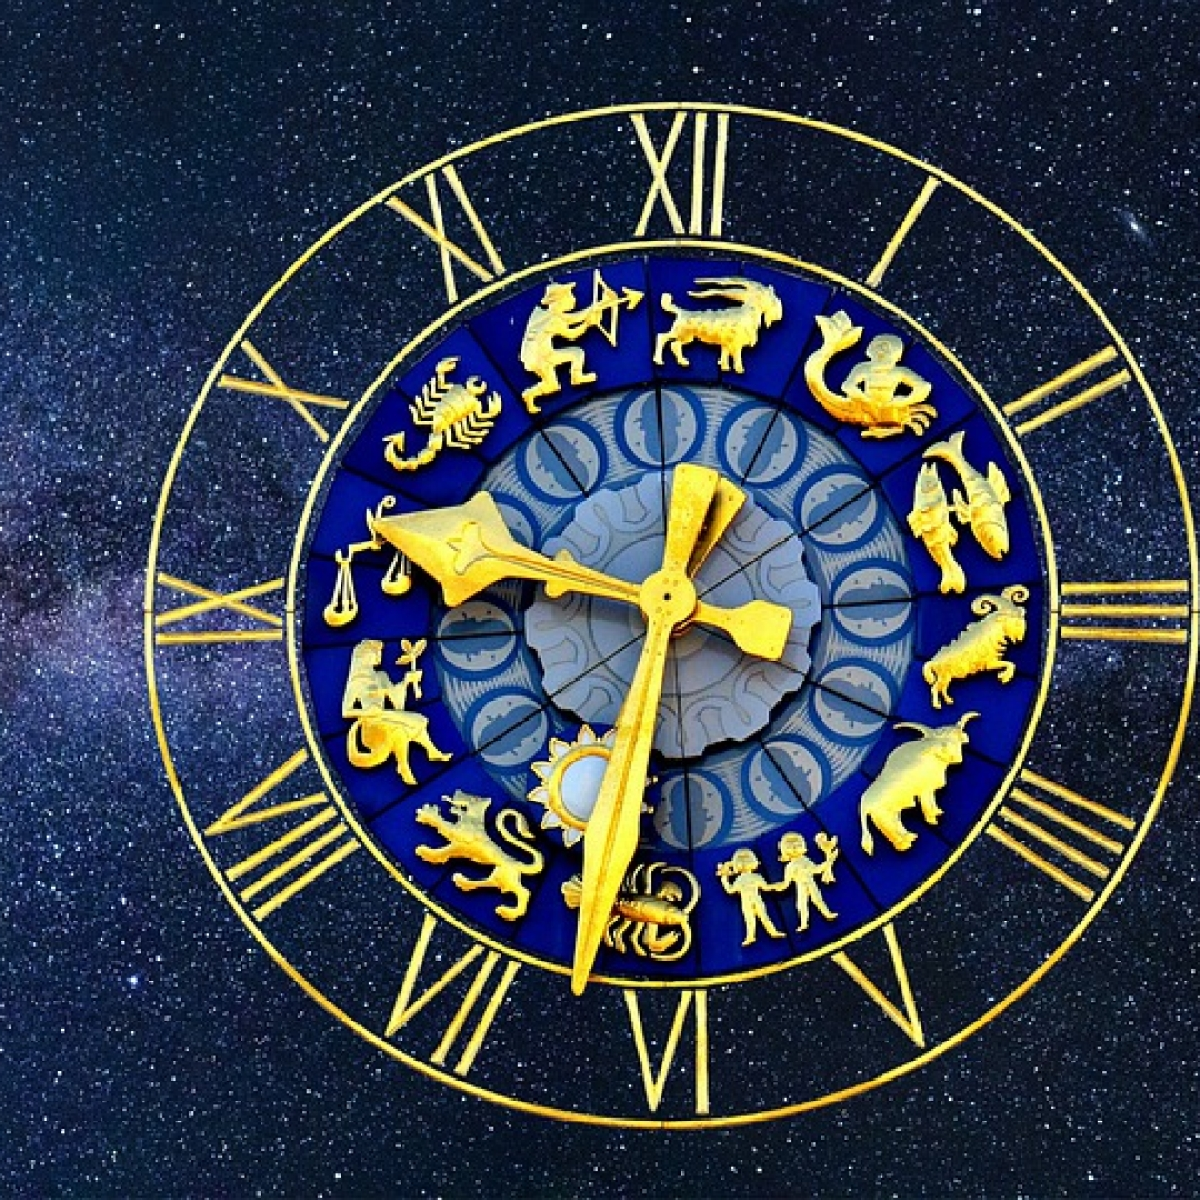 Daily Horoscope for Monday, May 17, 2021, for all zodiac signs